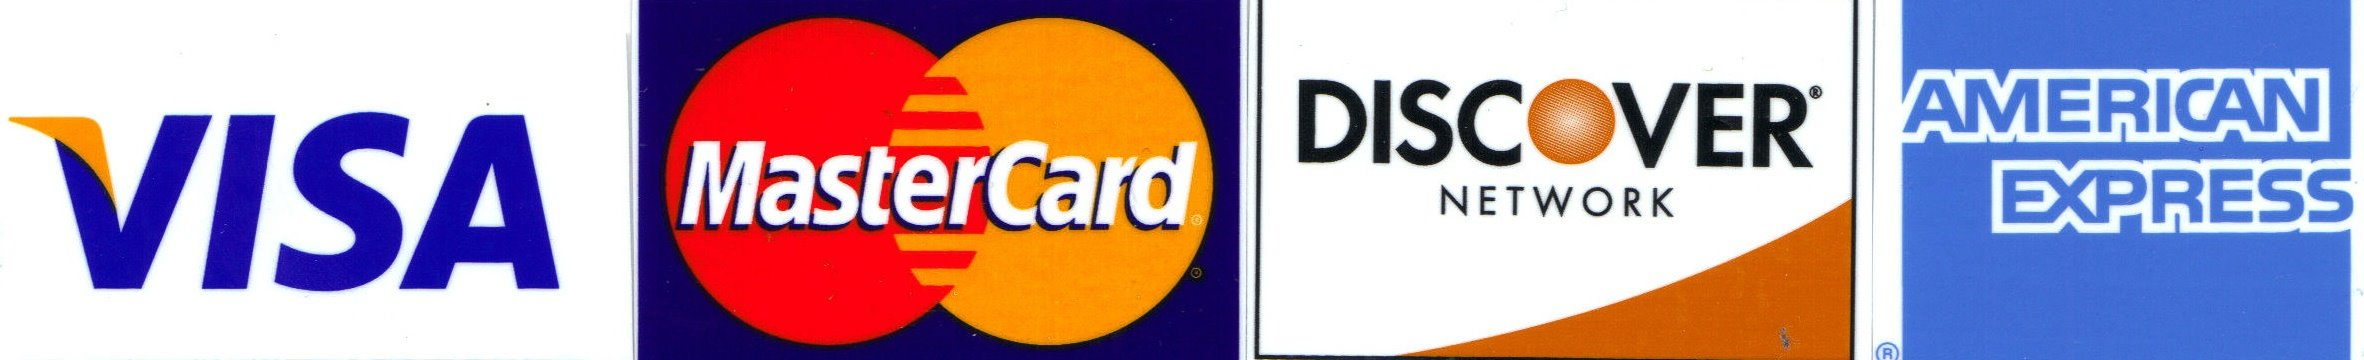 credit_cards.png